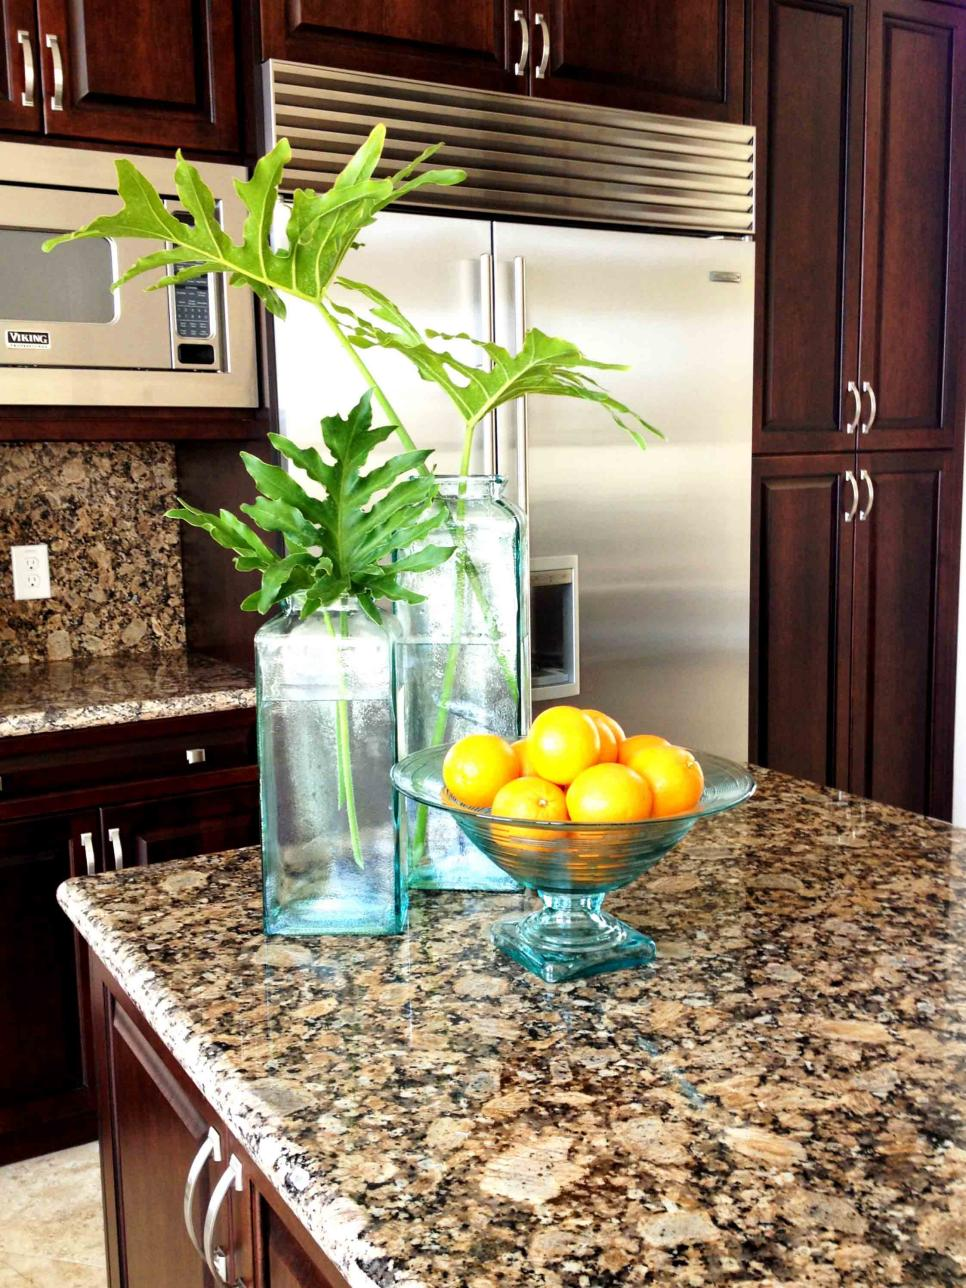 Granite countertops most popular favorite - Granite Countertops Most Popular Favorite 1